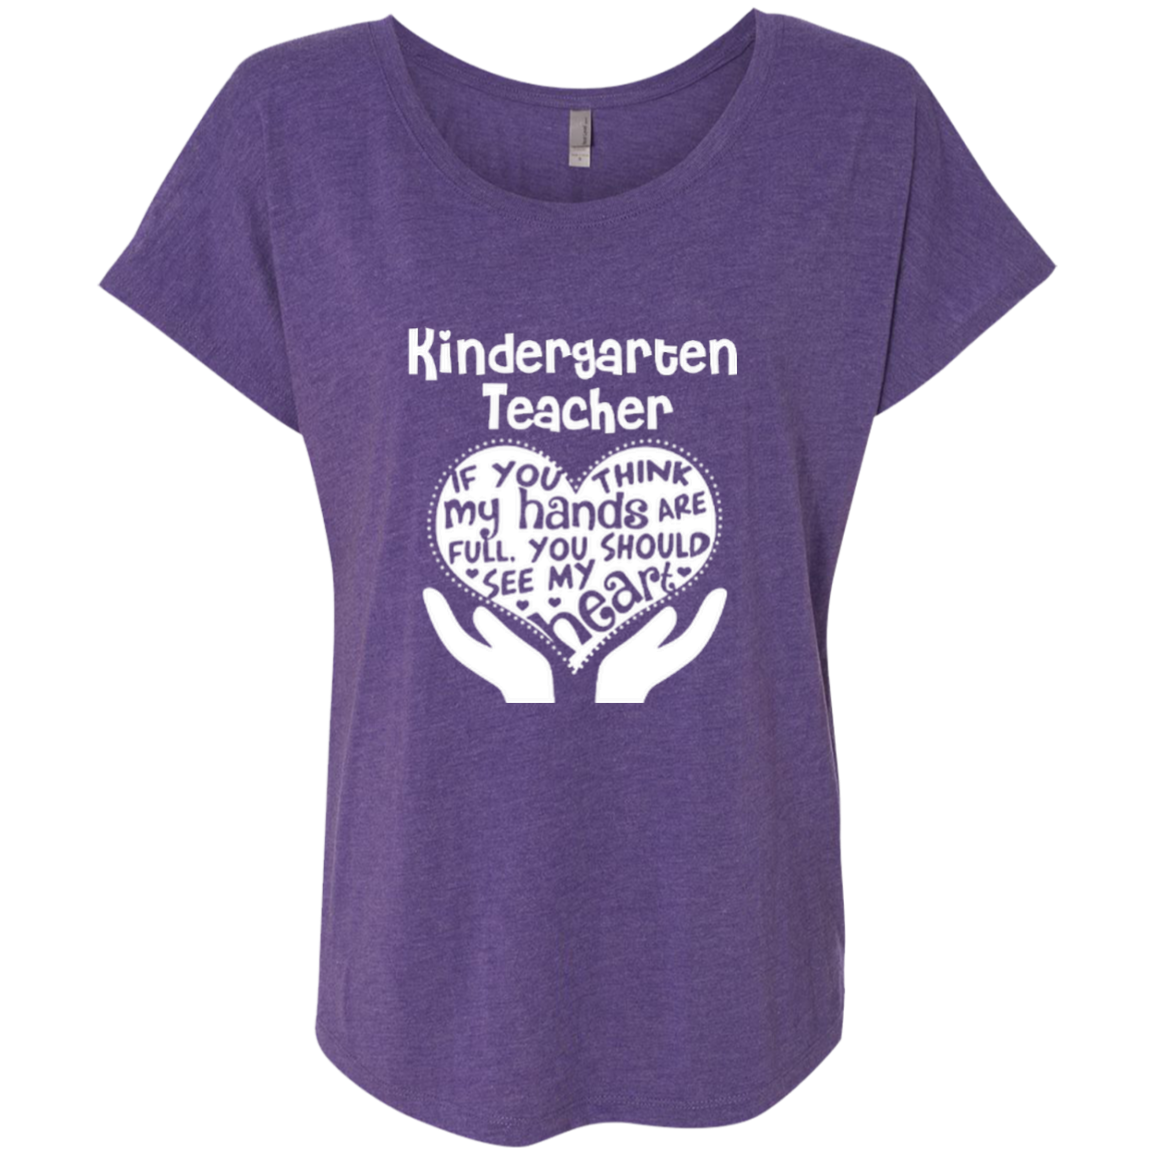 Kindergarten Teacher If You Think My Hands Are Full You Should See My Heart Next Level Ladies Triblend Dolman Sleeve